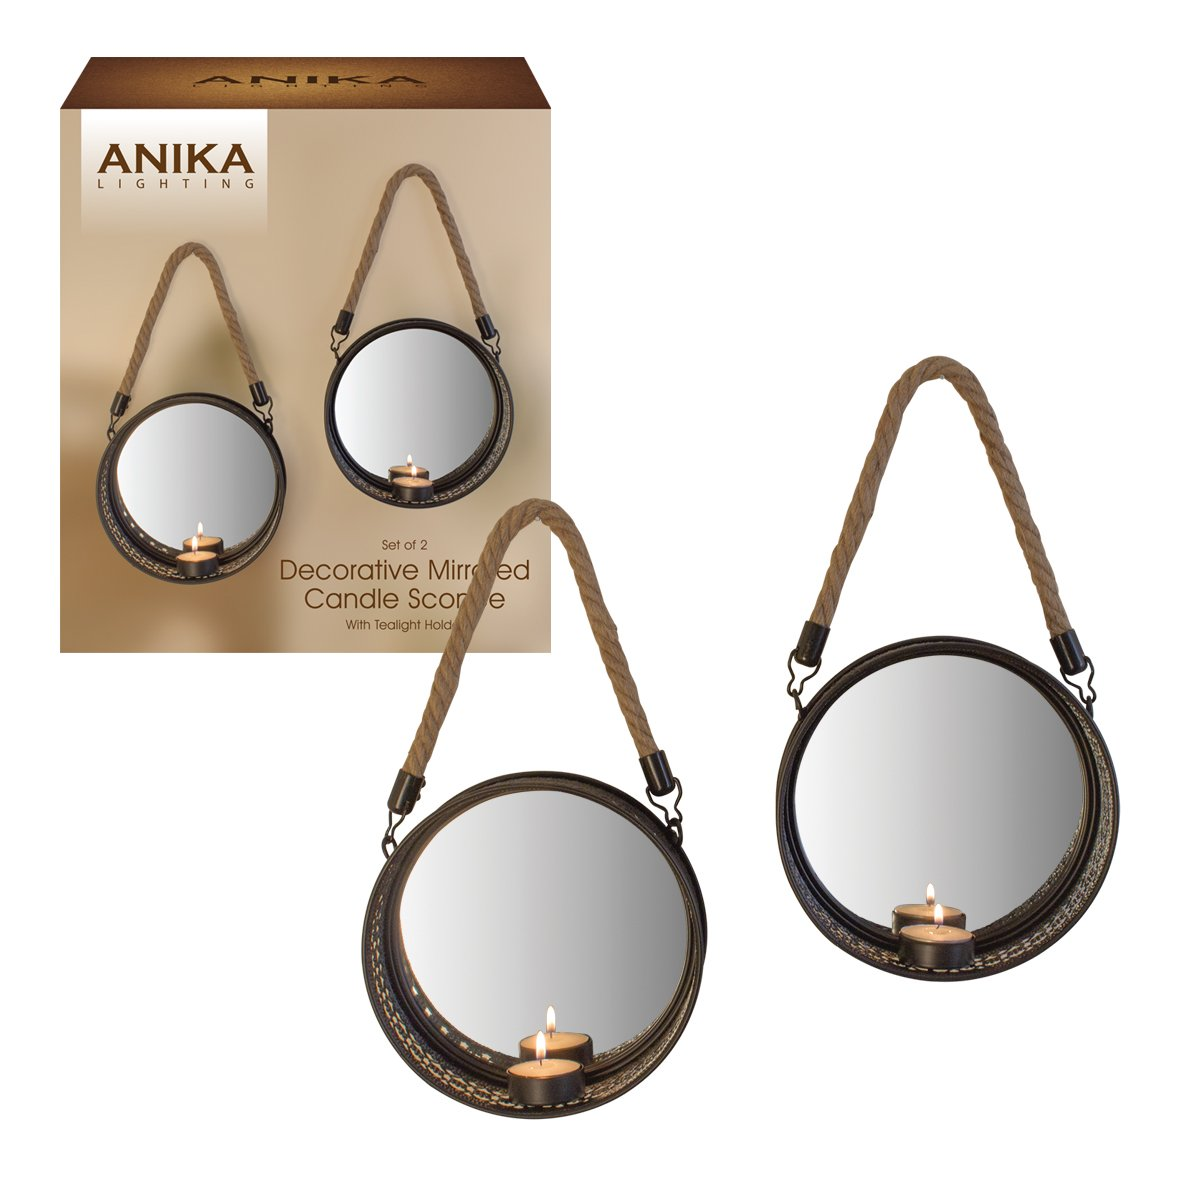 Anika Pack of 2 Decorative Black Metal Framed Geometric Pattern Mirror Backed Candle Tealight Holders, Metal, 2-Piece Benross 65360